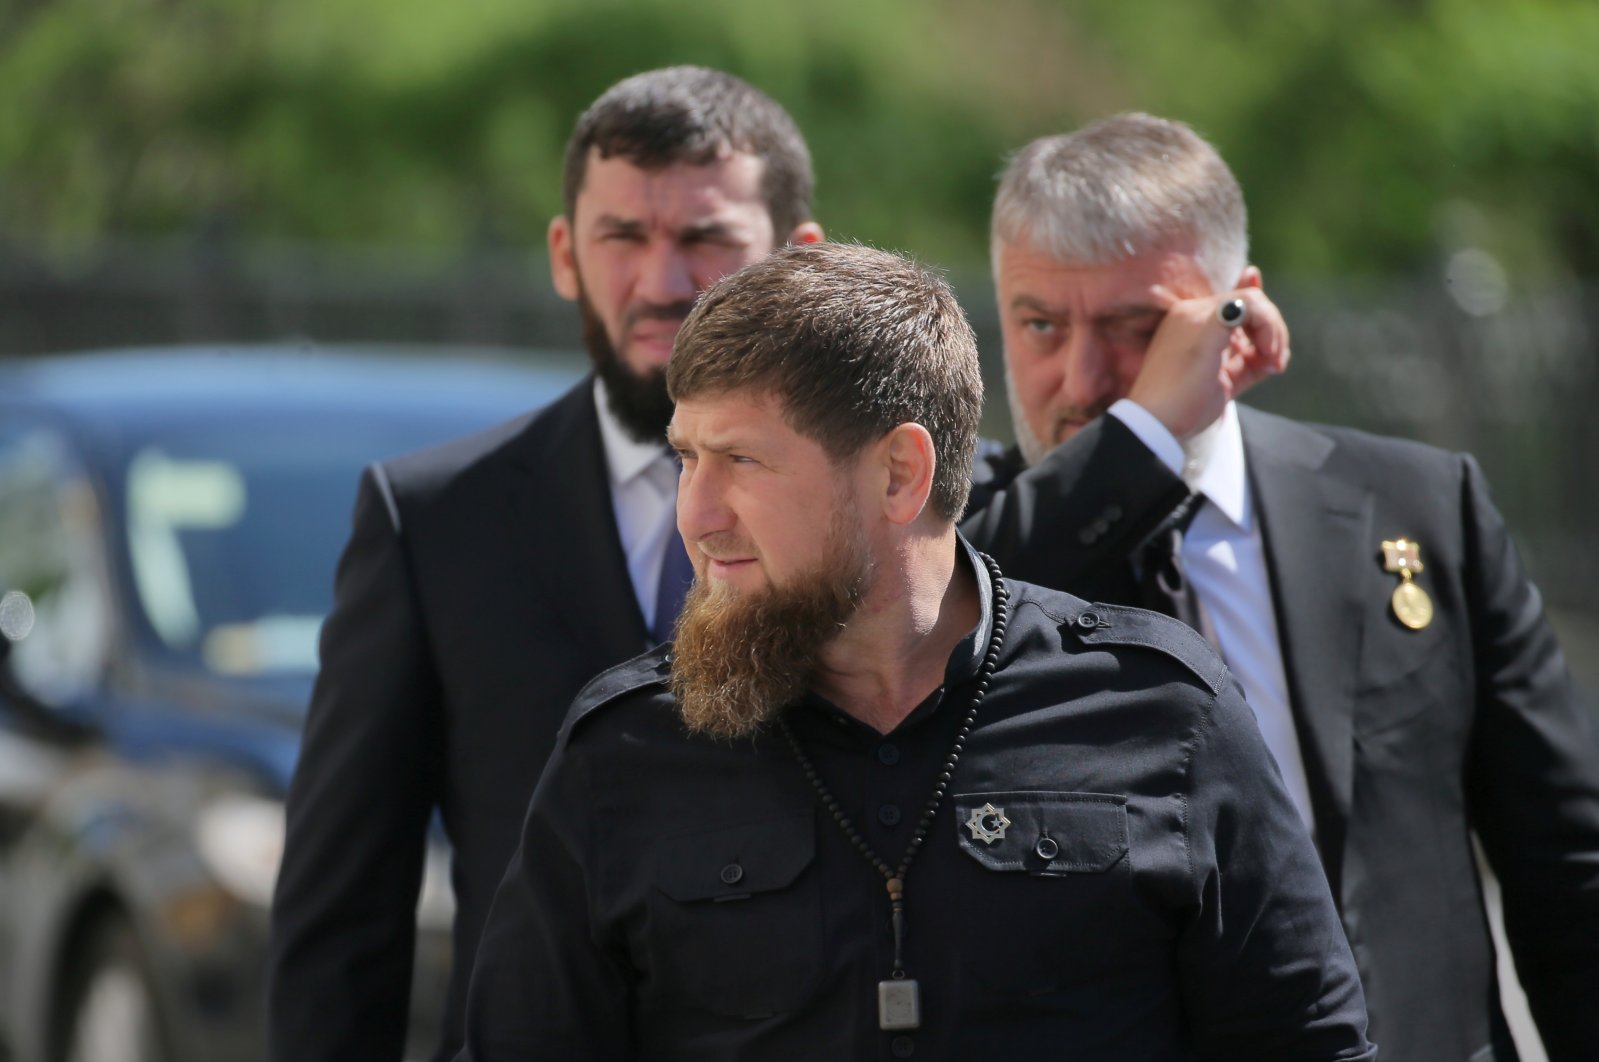 Head of the Chechen Republic Ramzan Kadyrov (front) walks before a ceremony inaugurating Vladimir Putin as president of Russia at the Kremlin in Moscow, Russia, May 7, 2018. (Reuters File Photo)